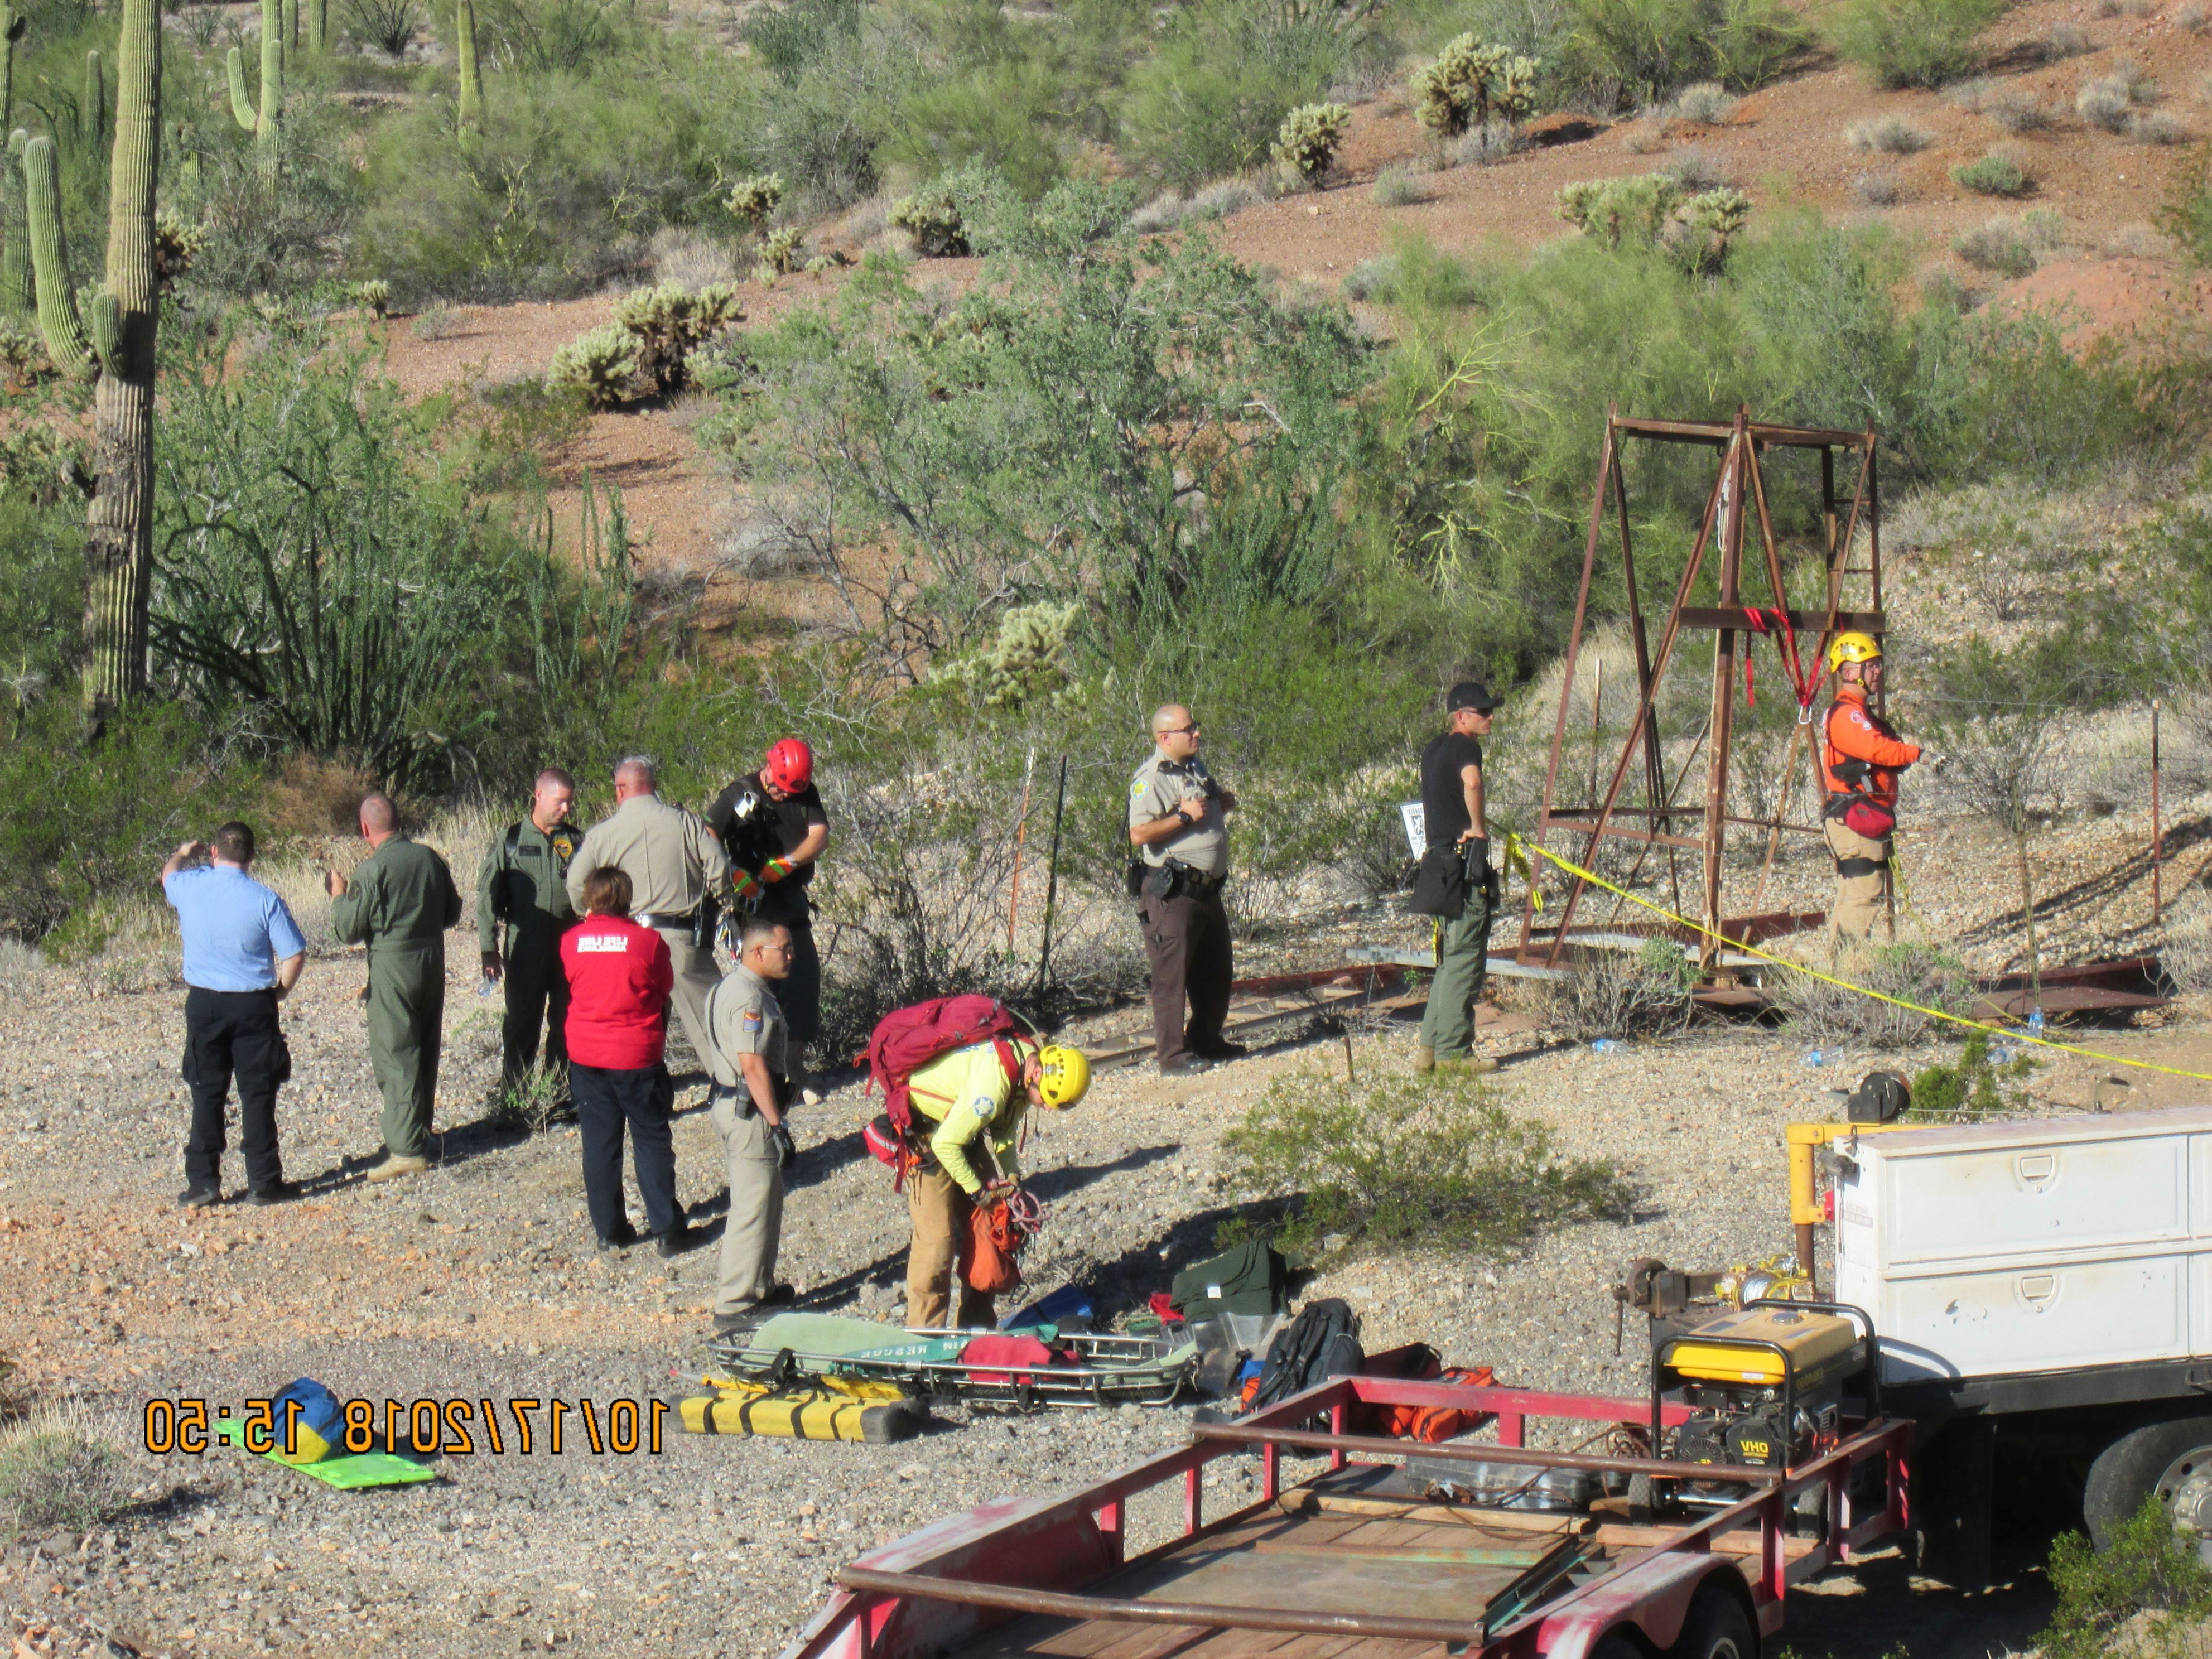 US: Arizona man talks about 2-day ordeal in abandoned mine